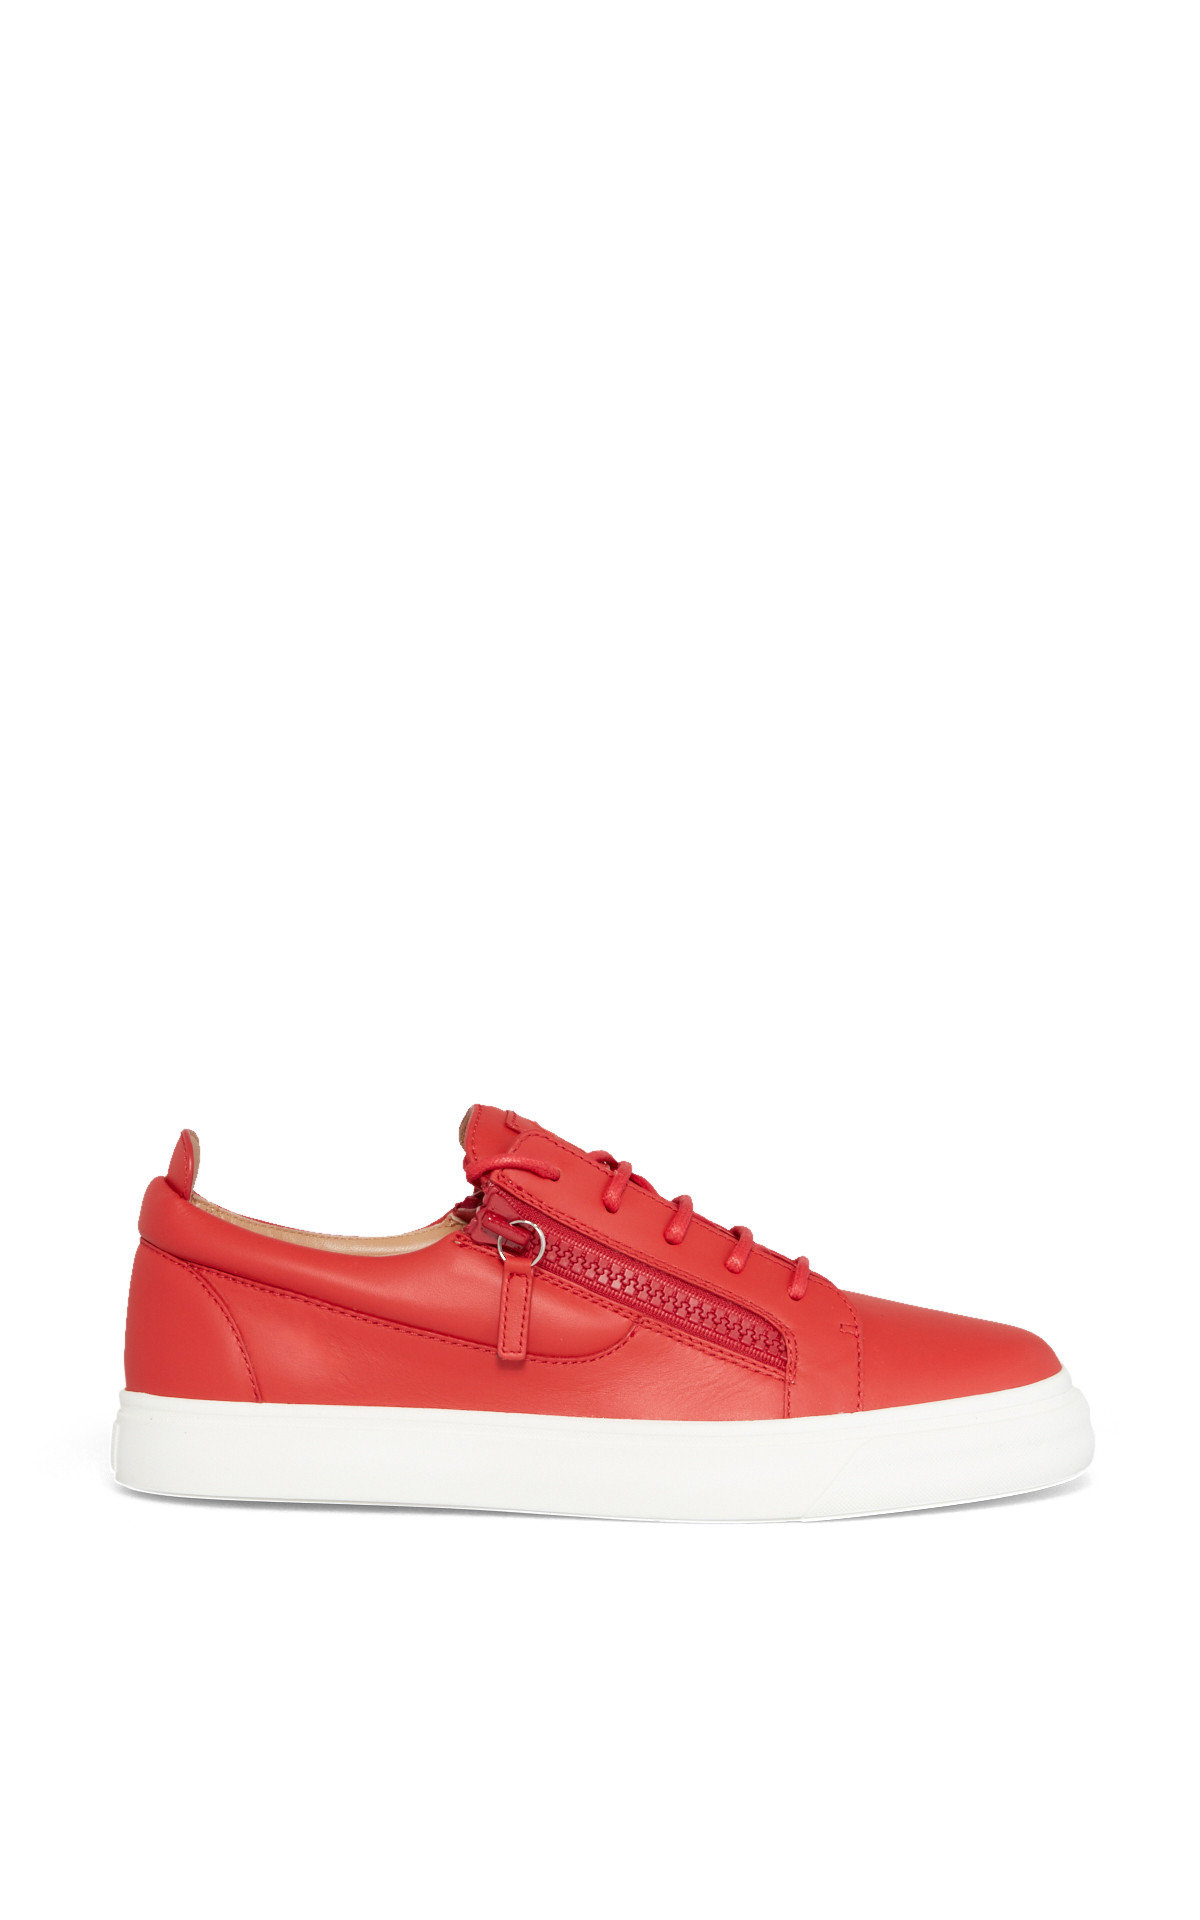 Guiseppe Zanotti Baskets rouges homme*